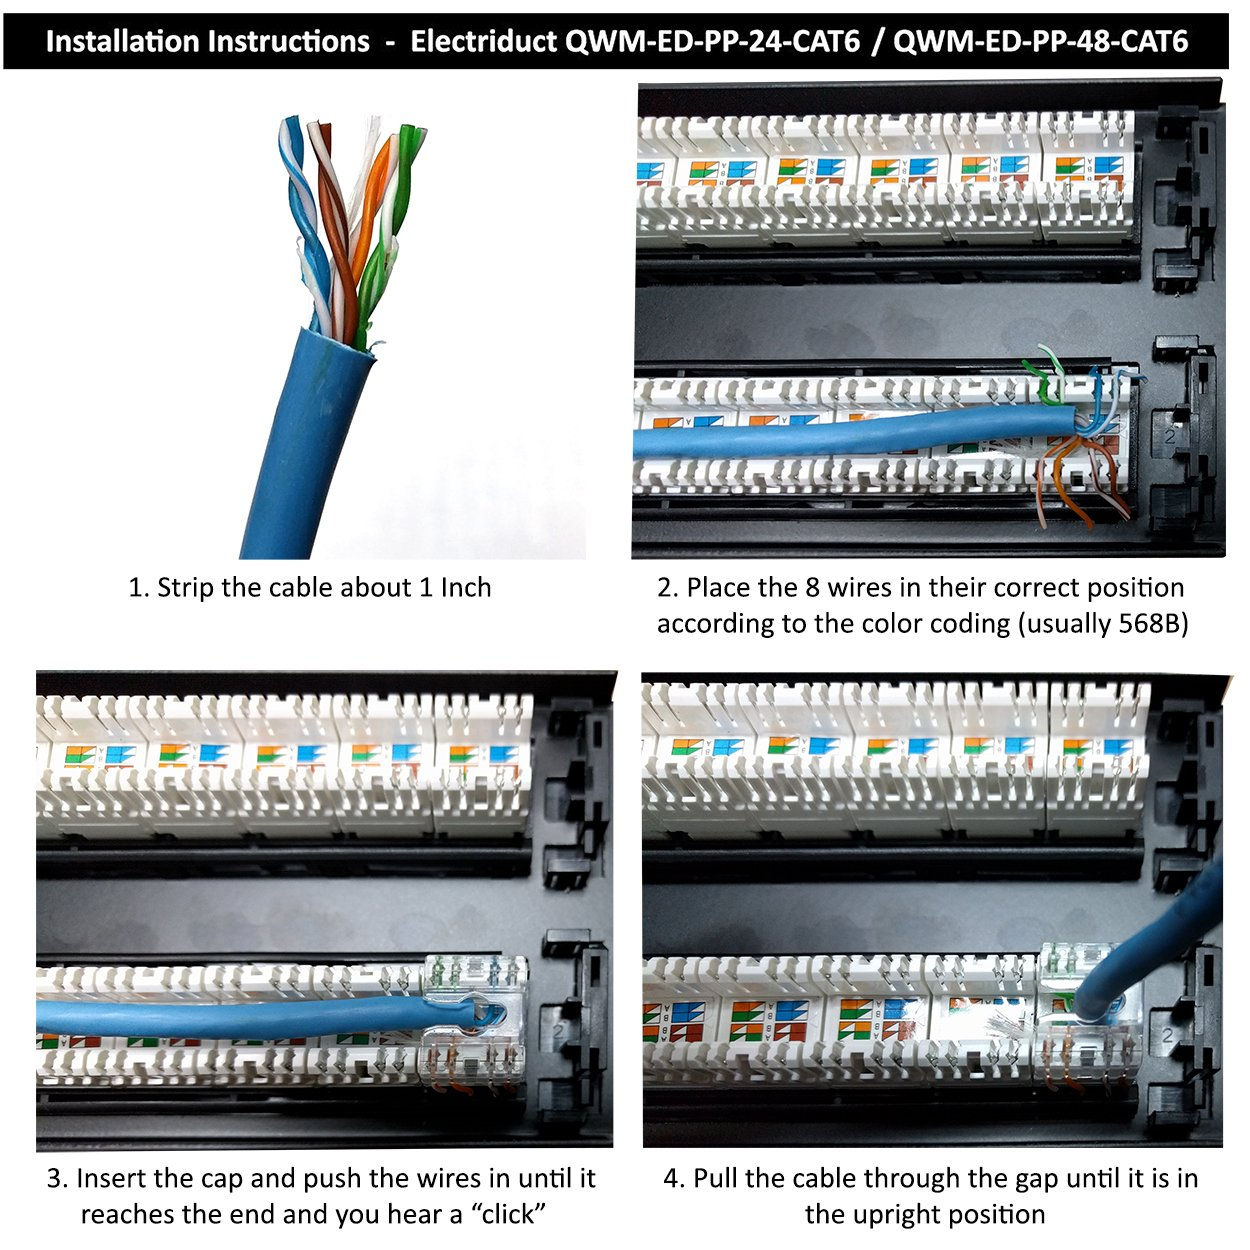 24 Port Cat6 Unshielded 1u Patch Panel 19 Inch Loaded W Wiring Diagram Besides Rj45 Connector Tool Less Keystone Jacks Rackmount Or Wallmount Computers Accessories